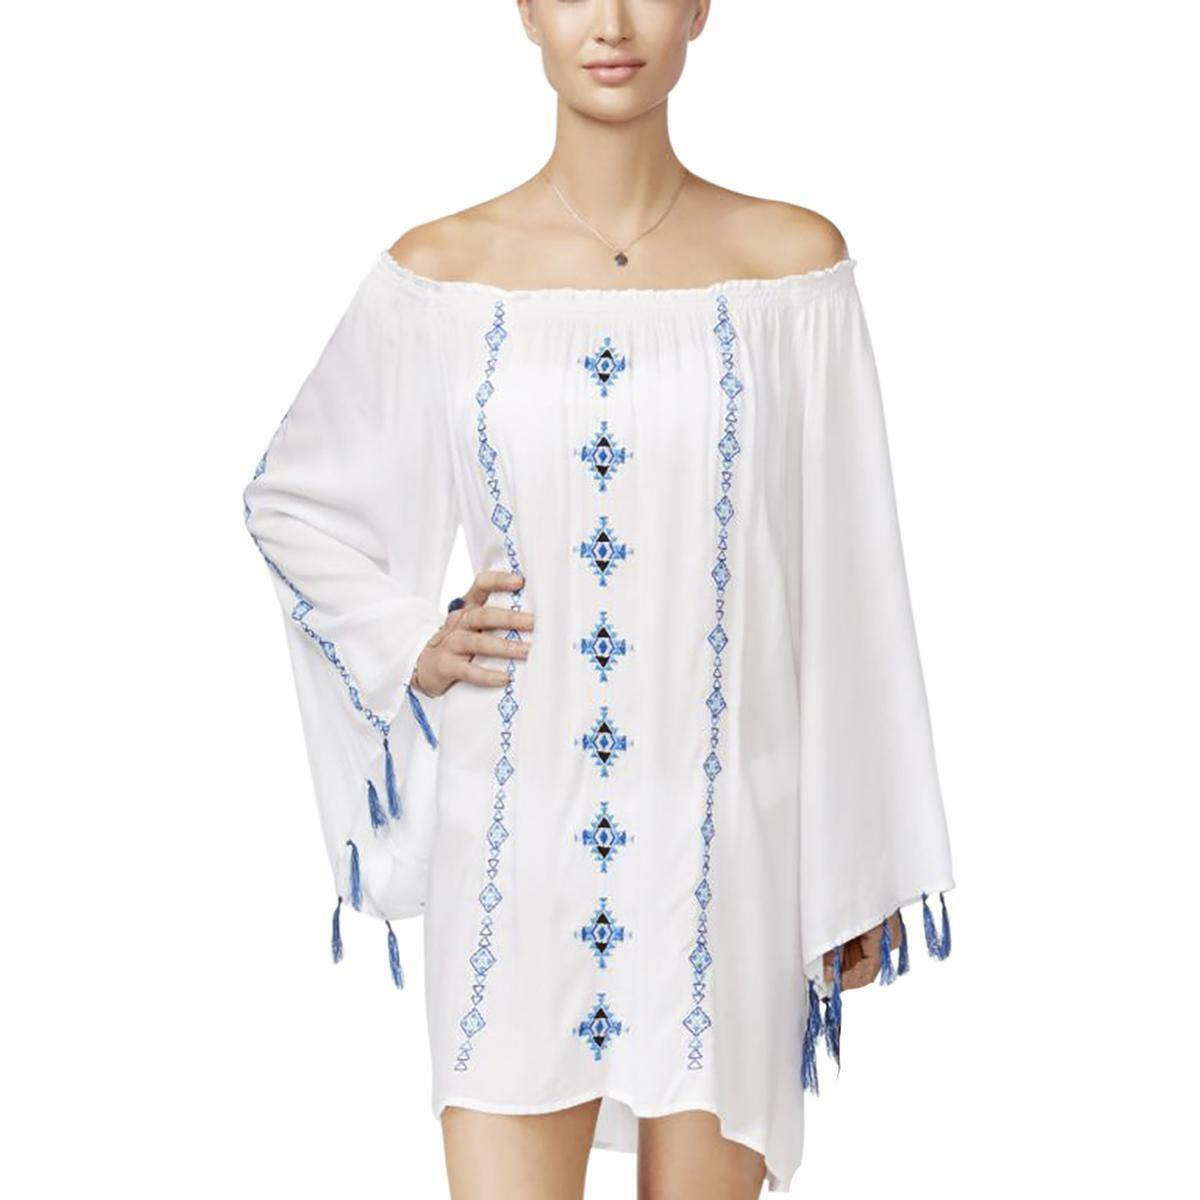 b95343673140d Details about Raviya Swim Cover Up Sz S Raviya White 3 4-Sleeve Embroidered  Off-Shoulder Tunic